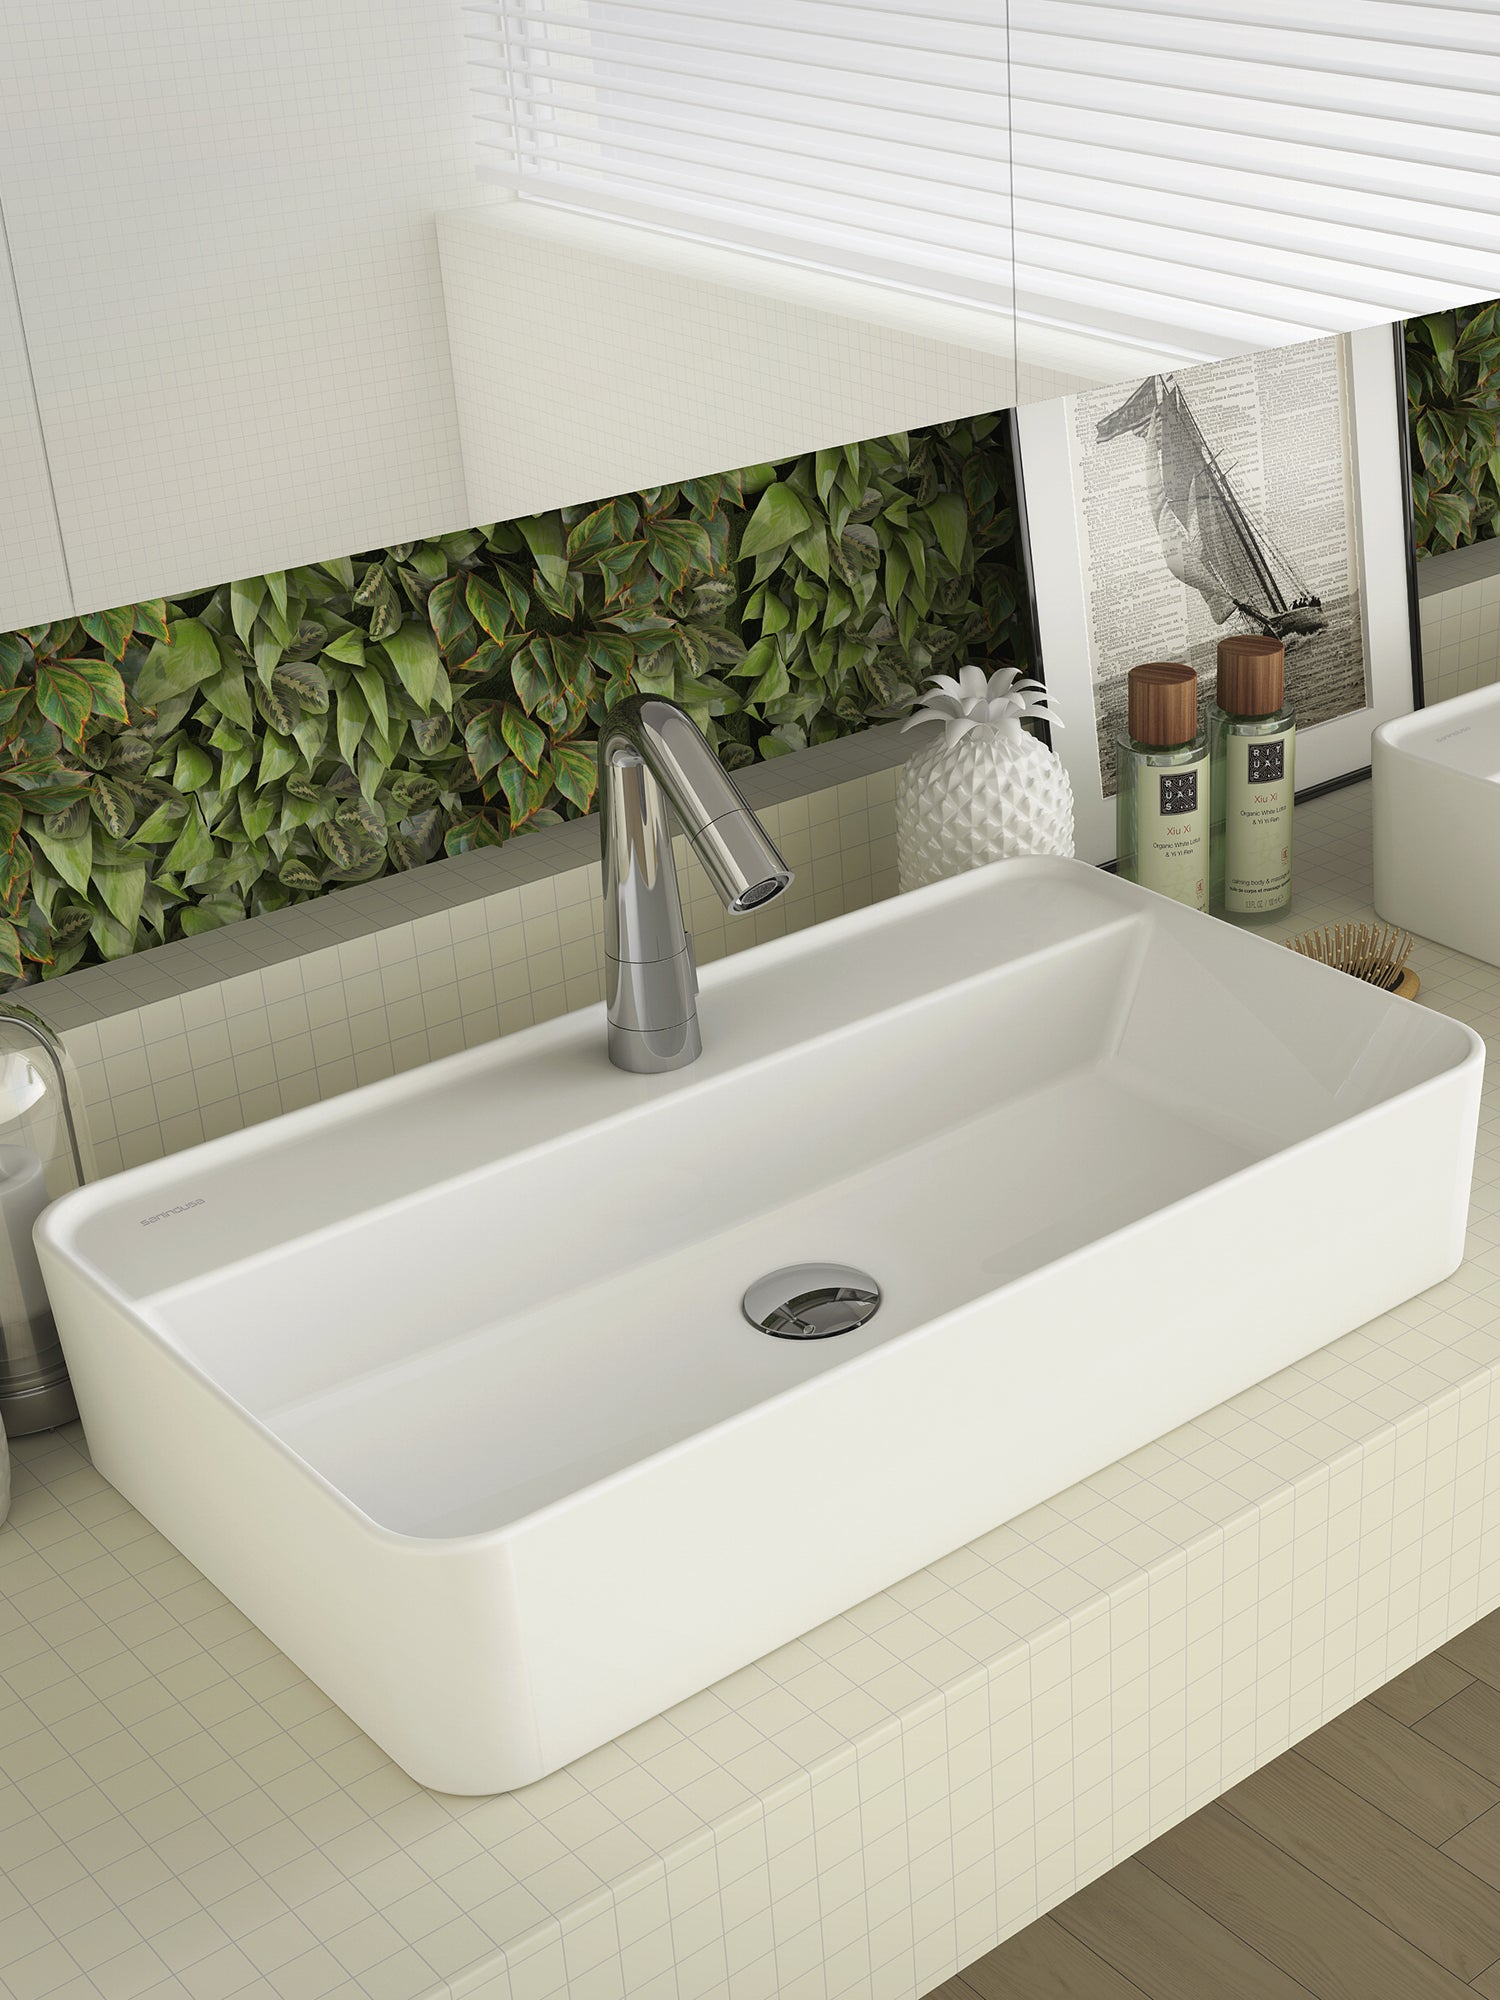 Sanlife Wall Hung Basin #136930